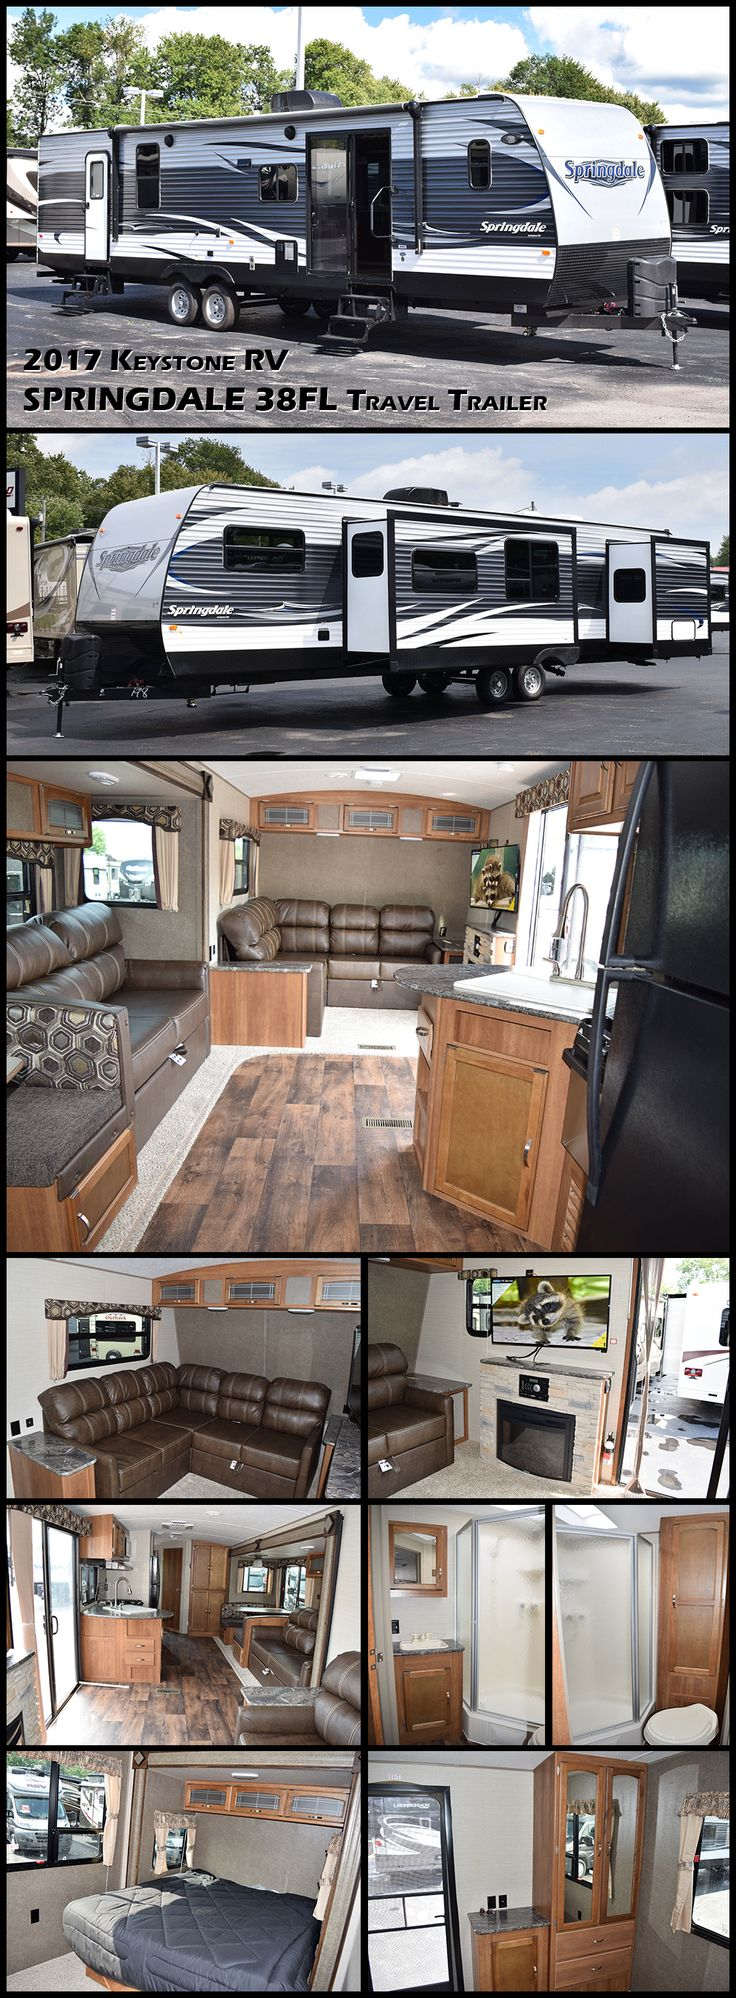 This 2017 Keystone RV SPRINGDALE 38FL is the perfect value residential travel trailer. The front living room is beautiful, with a corner couch, cozy fireplace and large sliding glass door. The kitchen is well-equipped with a residential refrigerator and great storage. The bathroom has plenty of headroom in the neo-angle shower and good linen storage. In the rear of the trailer is the master bedroom. Plenty of windows allow natural light inside, creating an open atmosphere.